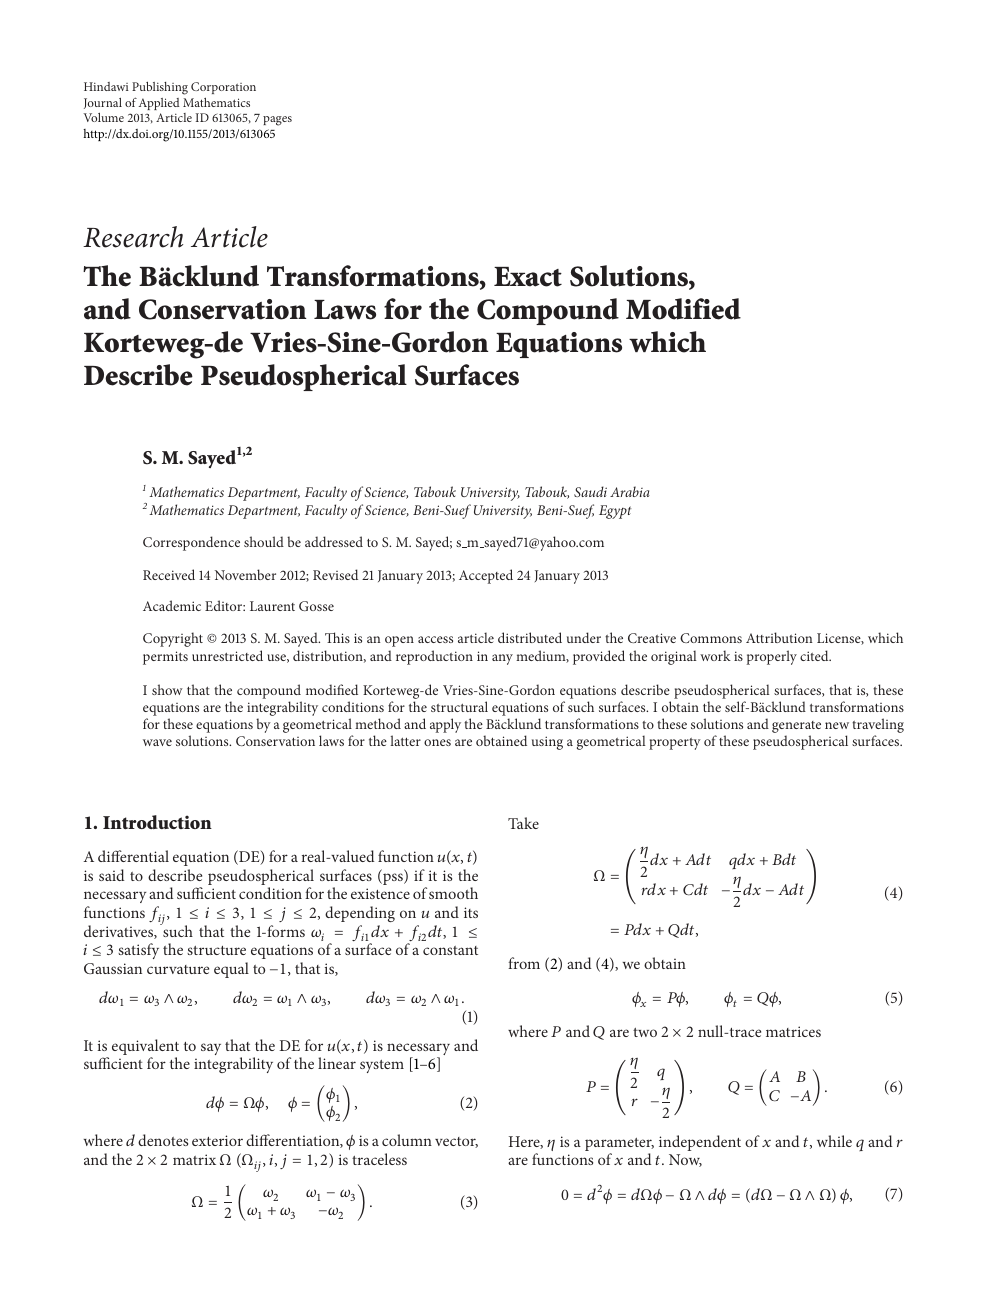 The Bäcklund Transformations, Exact Solutions, and